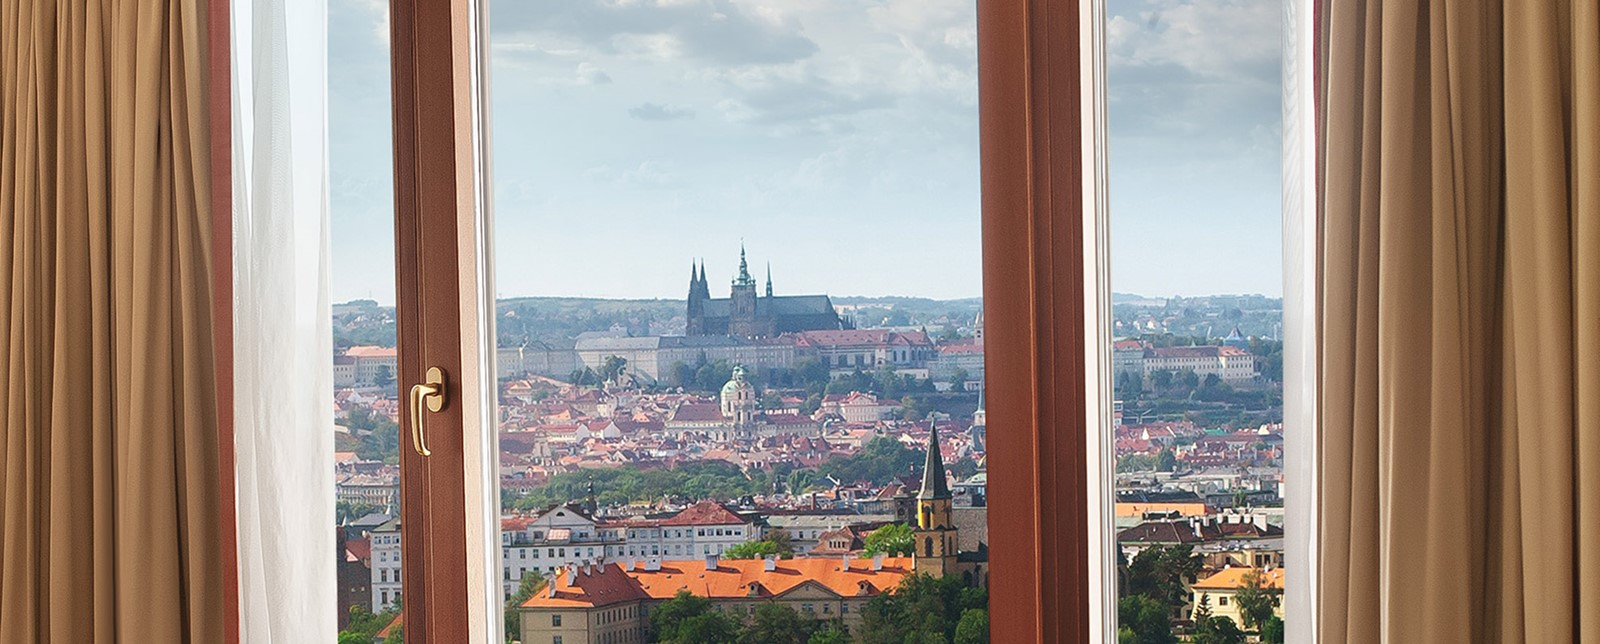 Corinthia Prague view